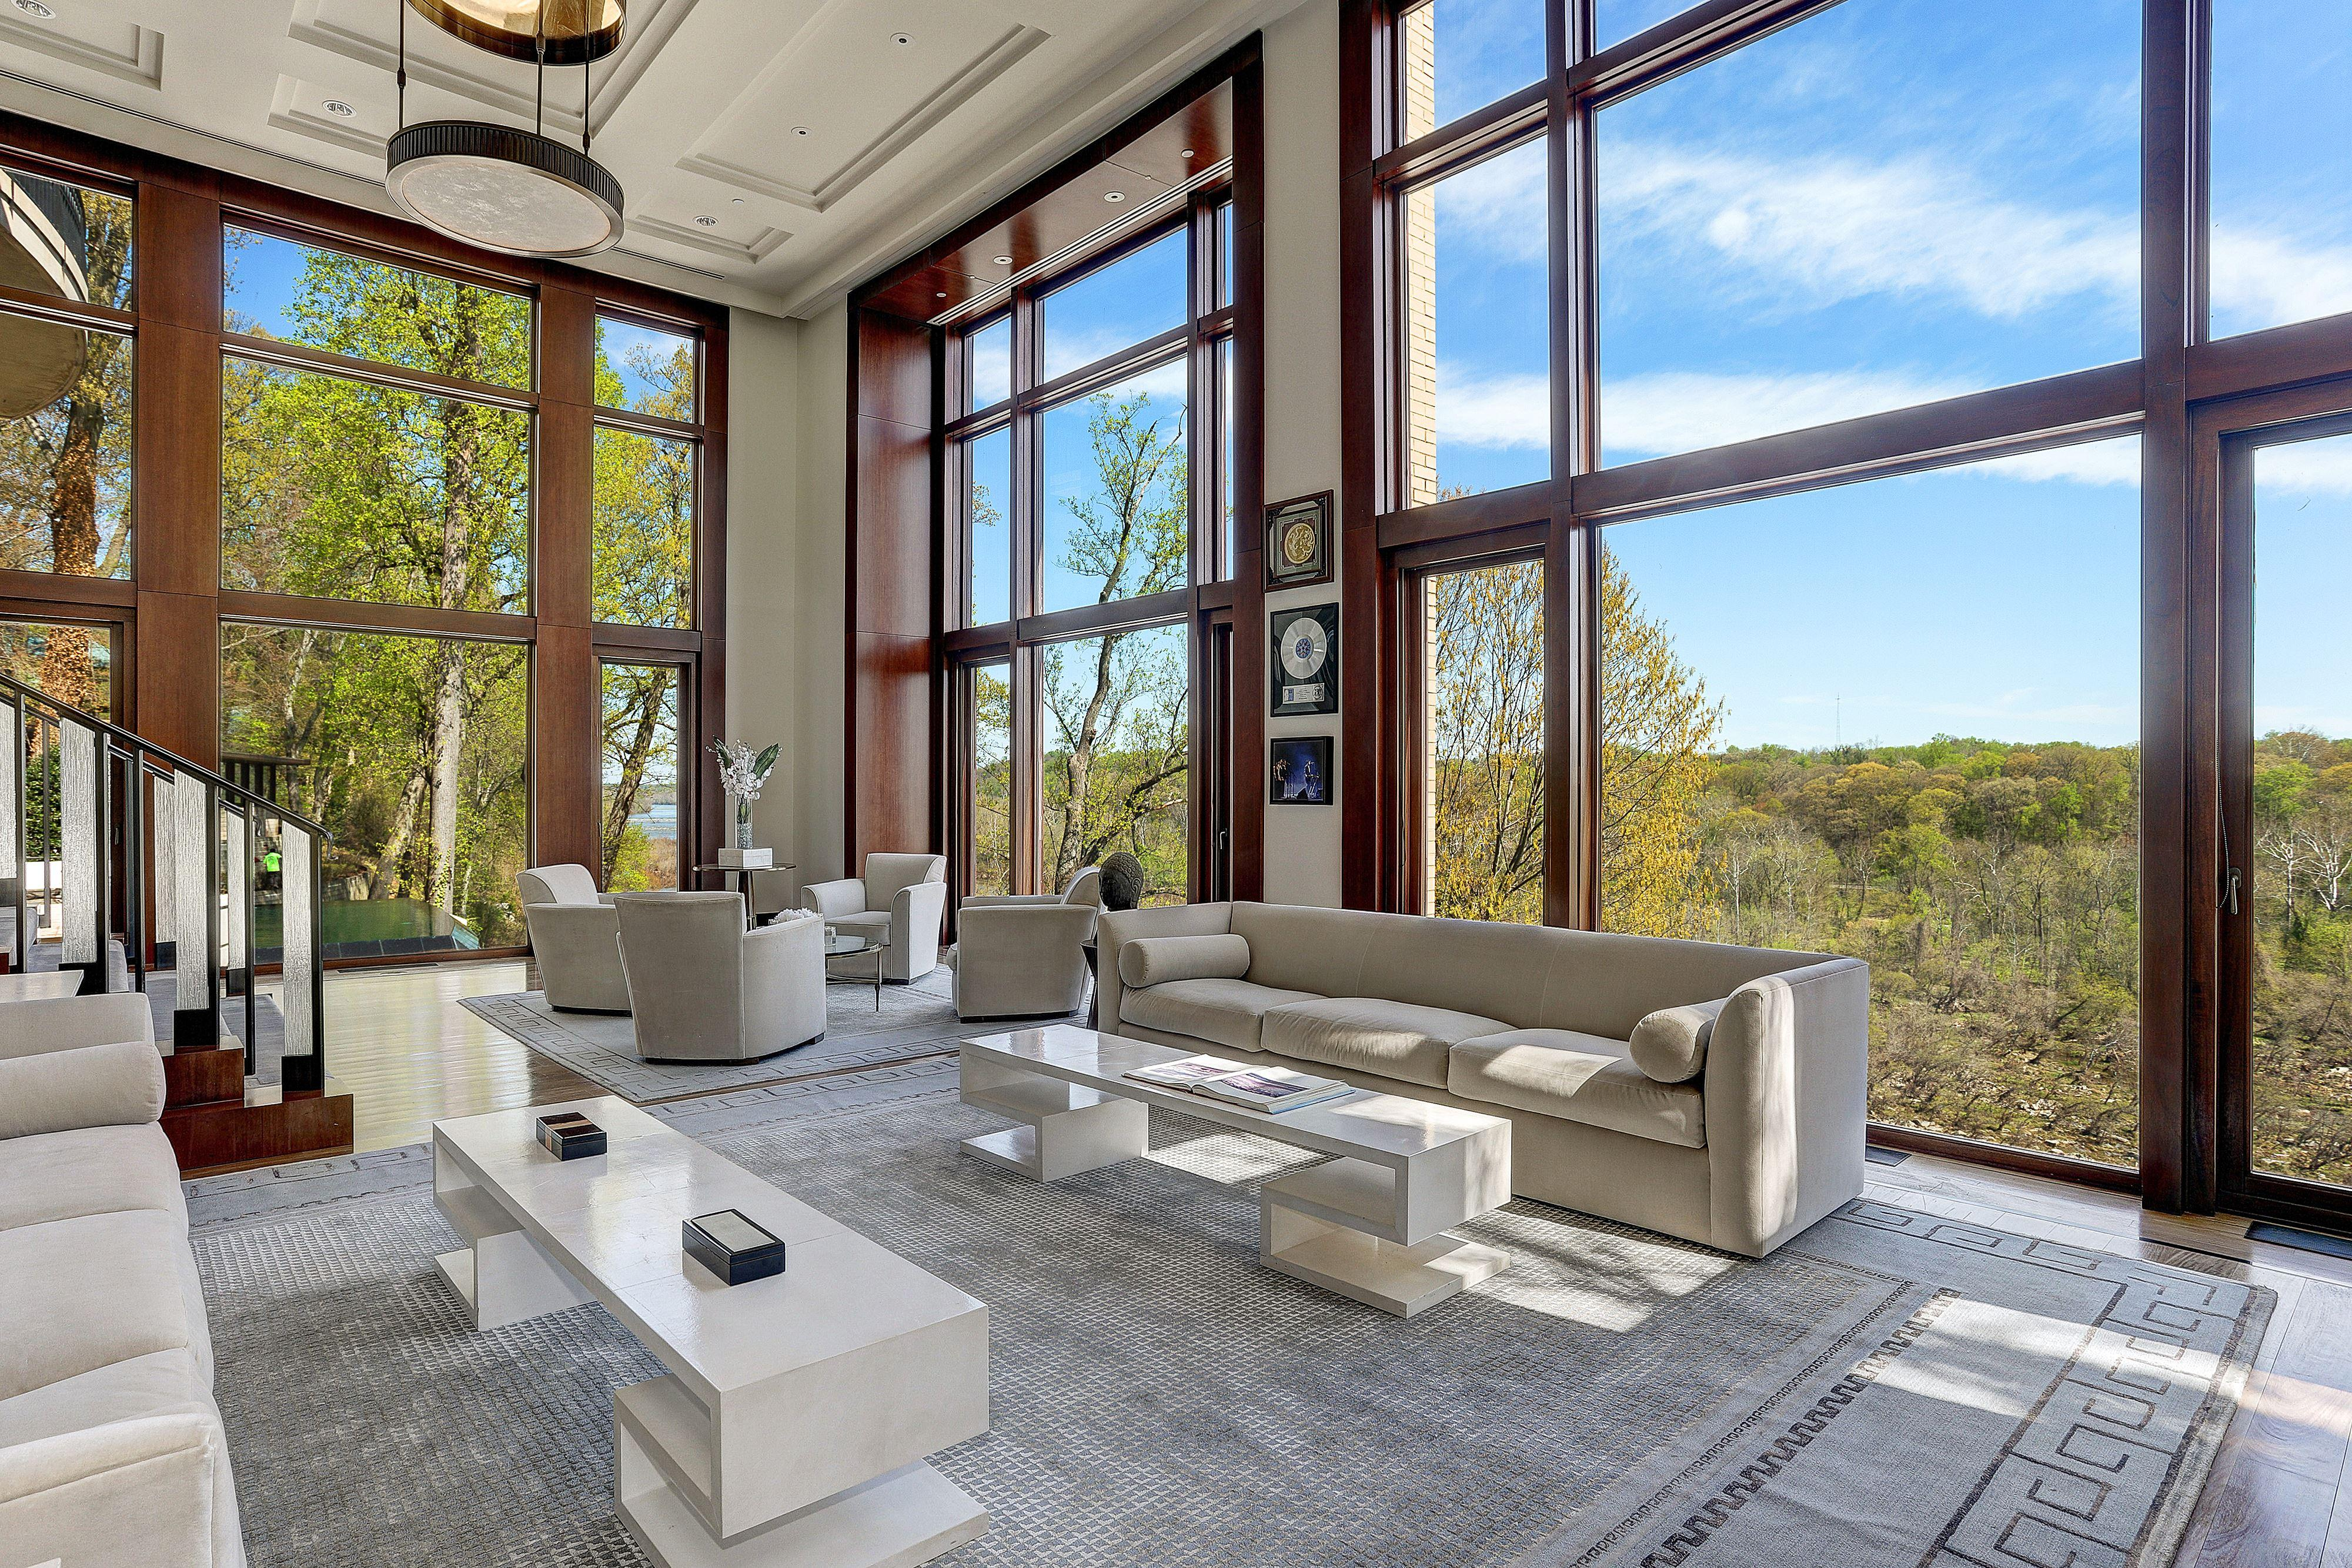 For $62.95 million, you could buy more than 1700 Tesla model 3's or almost 70,000 pairs of Christian Louboutin shoes. Or you can buy a 48,000+-square-foot mansion overlooking the Potomac River with nine bedrooms, 20 bathrooms, a garage that can accommodate over 30 cars and a guest house designed by Frank Lloyd Wright. (Image: Courtesy HomeVisit)